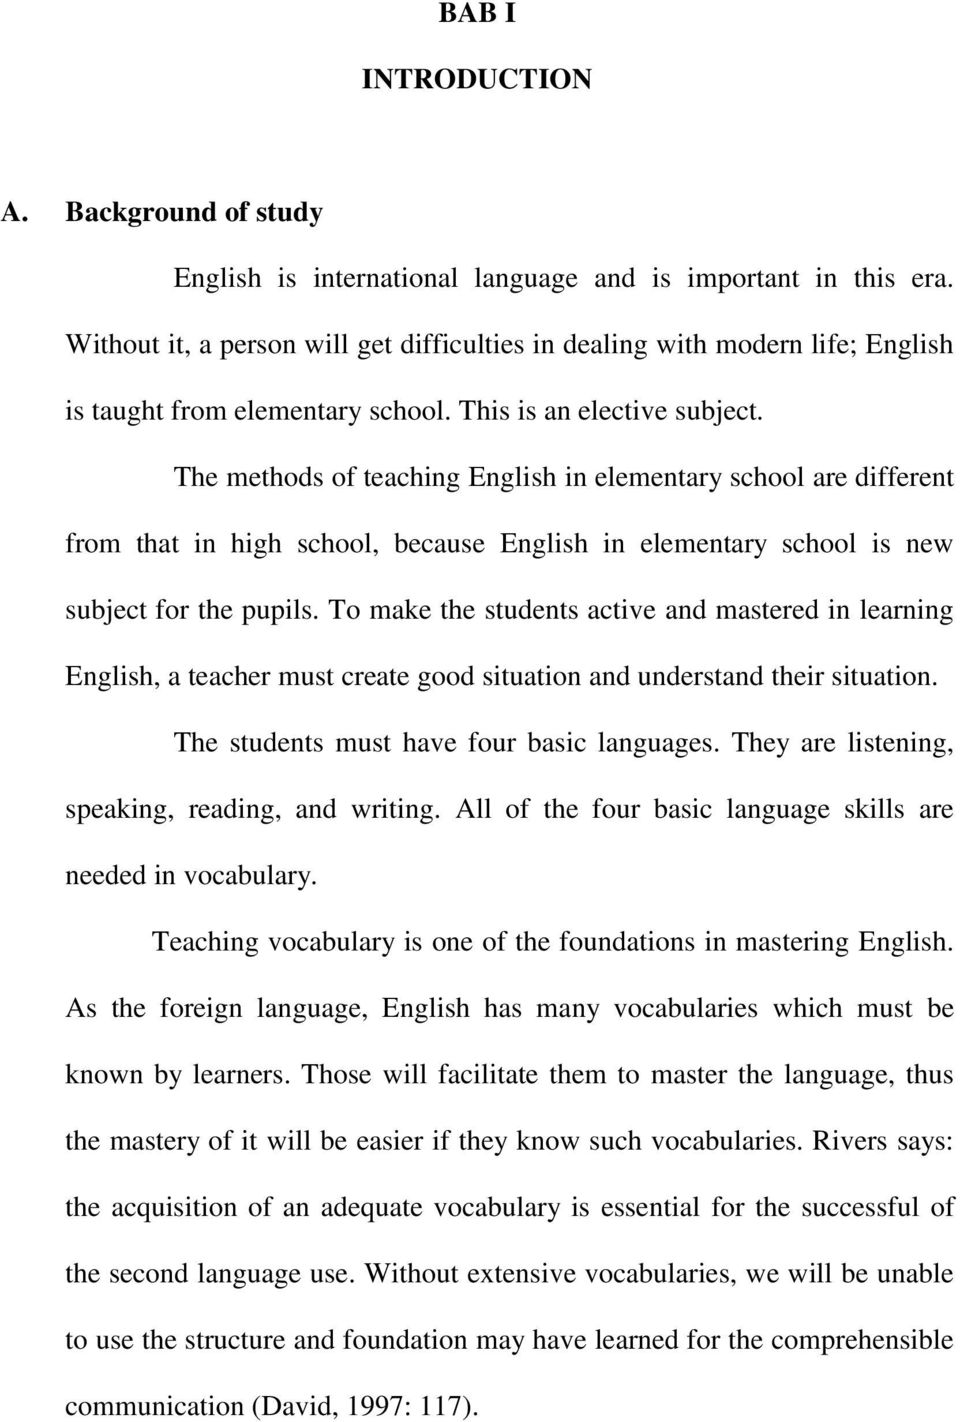 The methods of teaching English in elementary school are different from that in high school, because English in elementary school is new subject for the pupils.